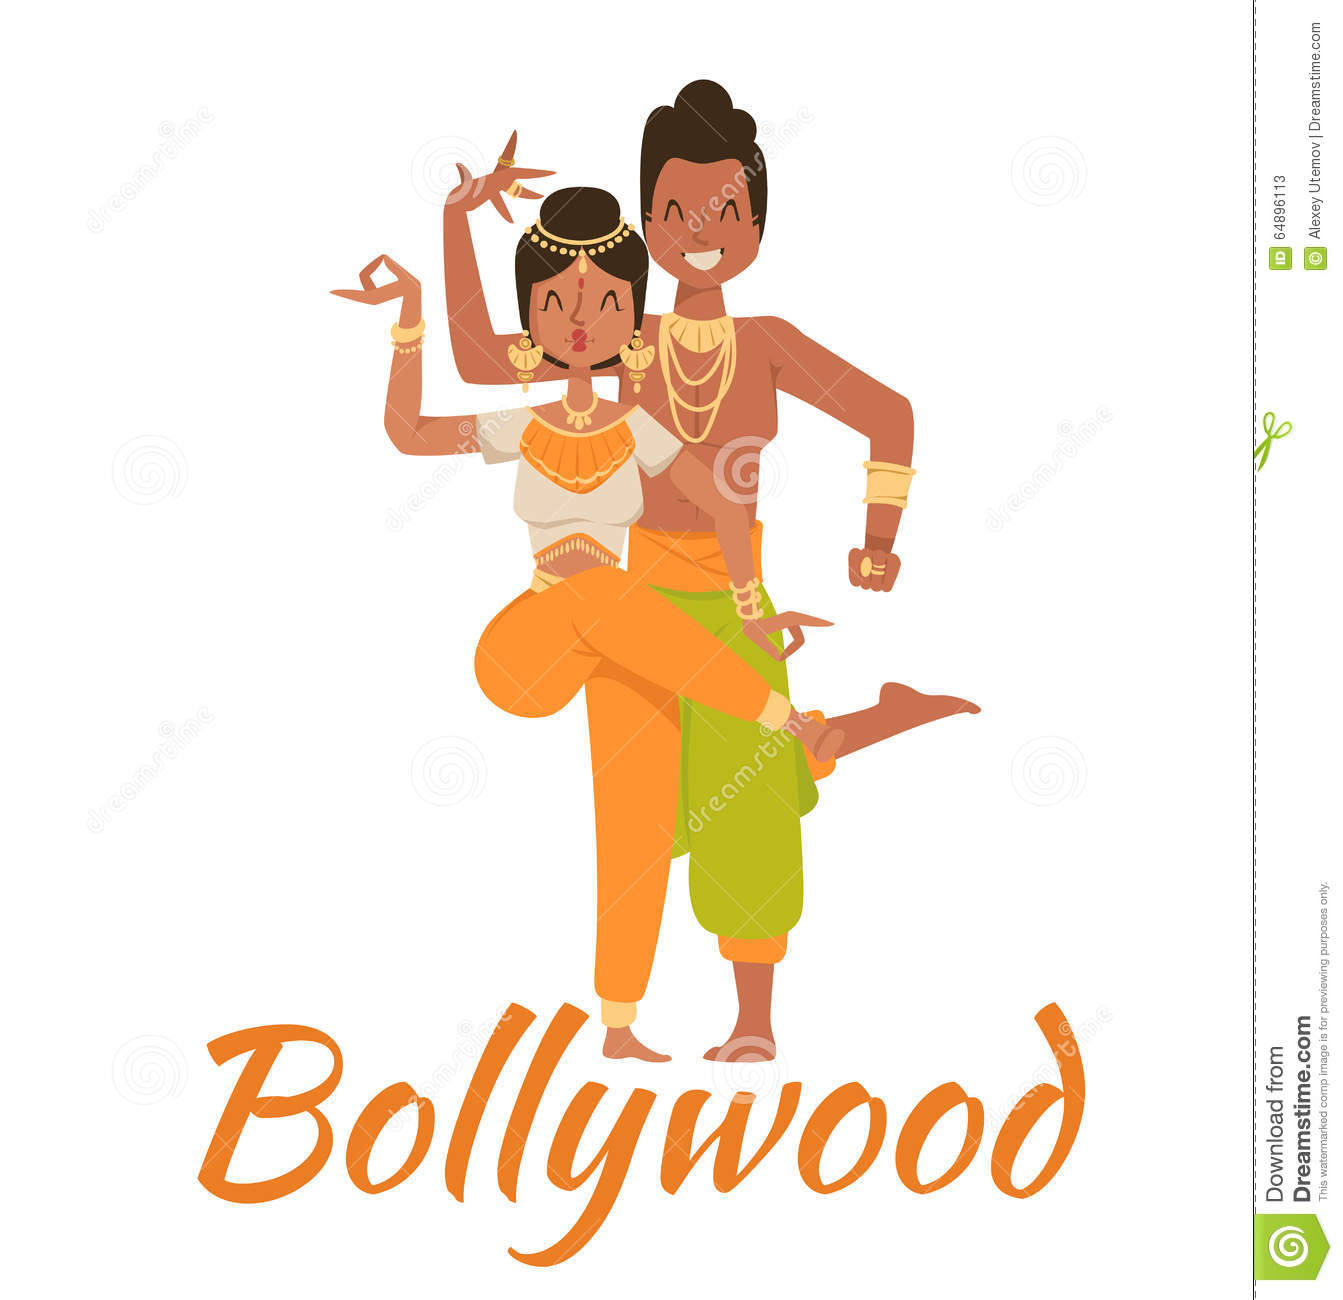 Bollywood clipart download.